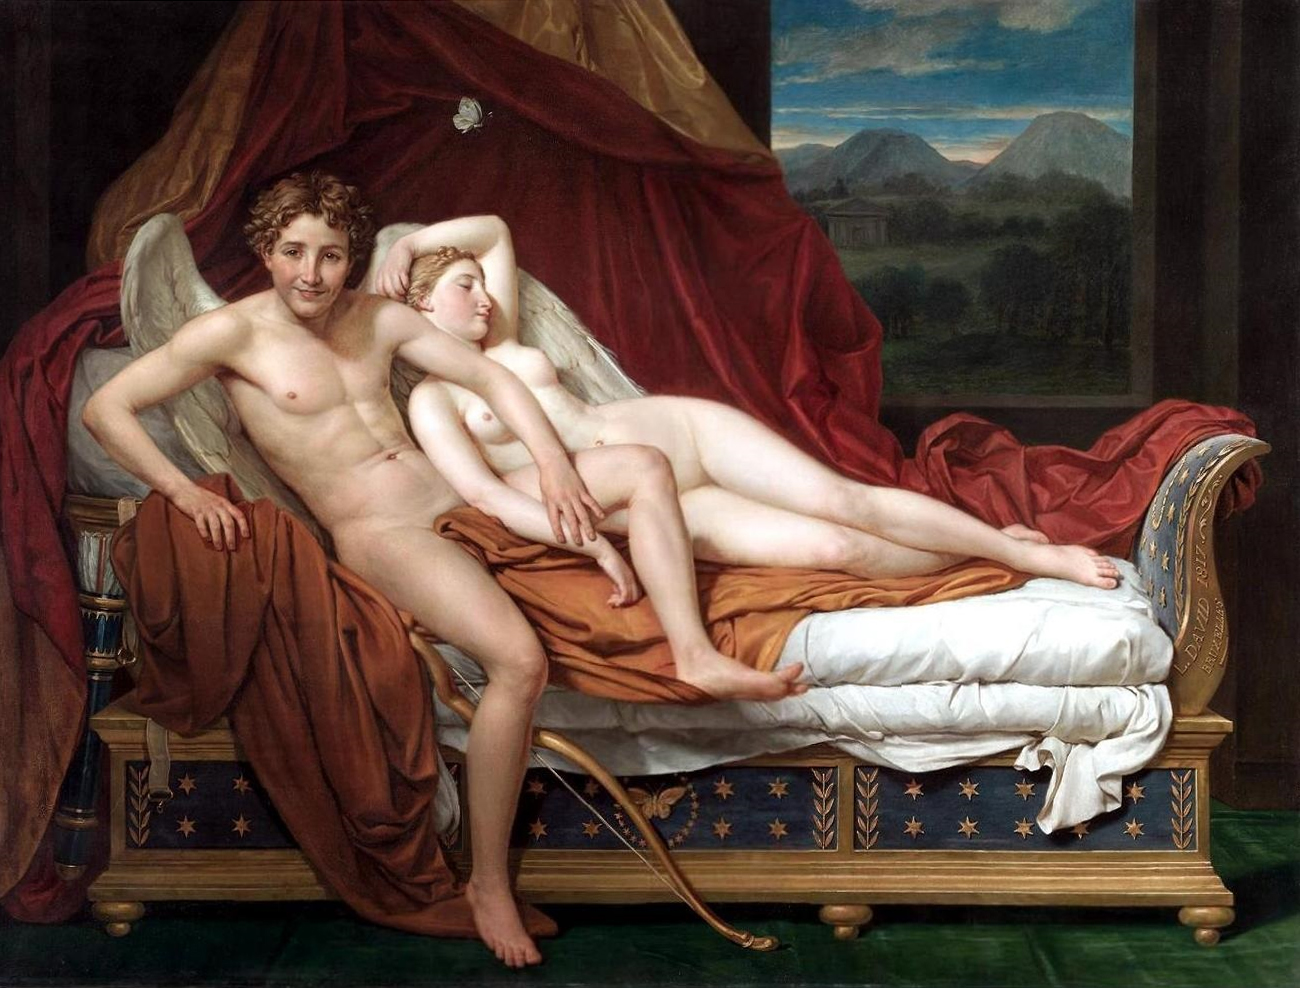 http://upload.wikimedia.org/wikipedia/commons/f/f9/Cupid_and_psyche.jpg